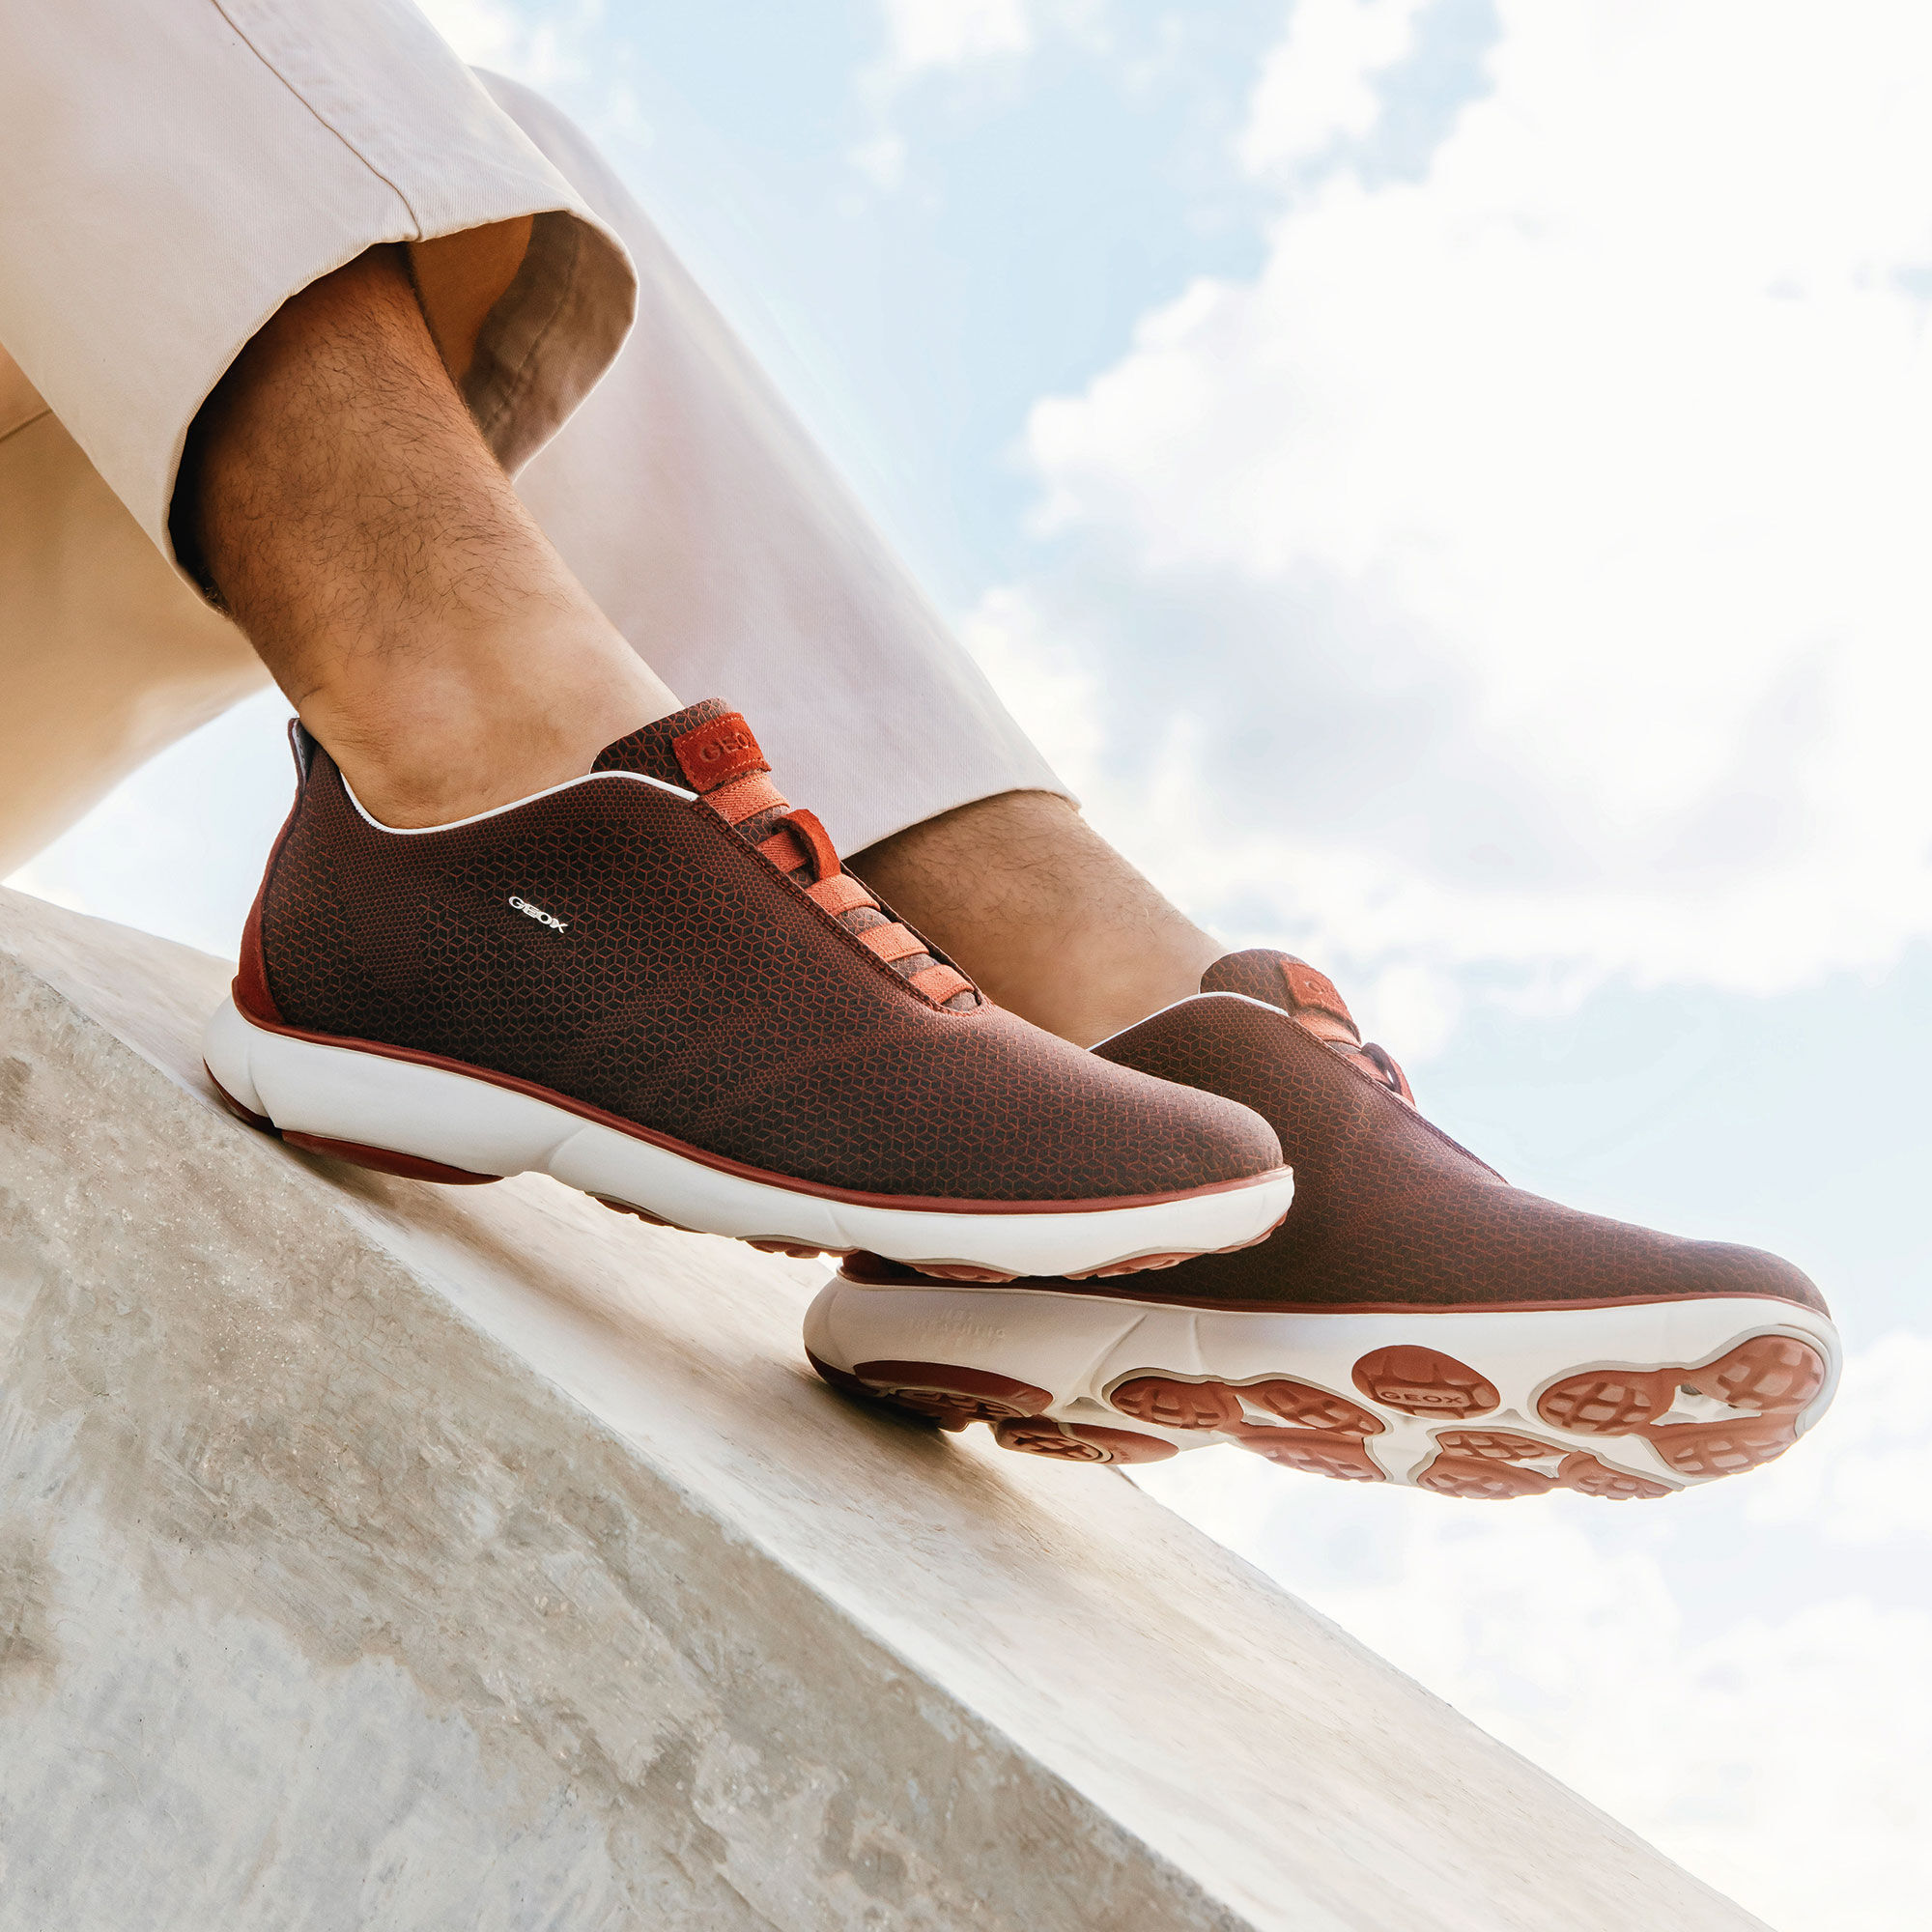 Geox NEBULA Man: Black and Red Sneakers